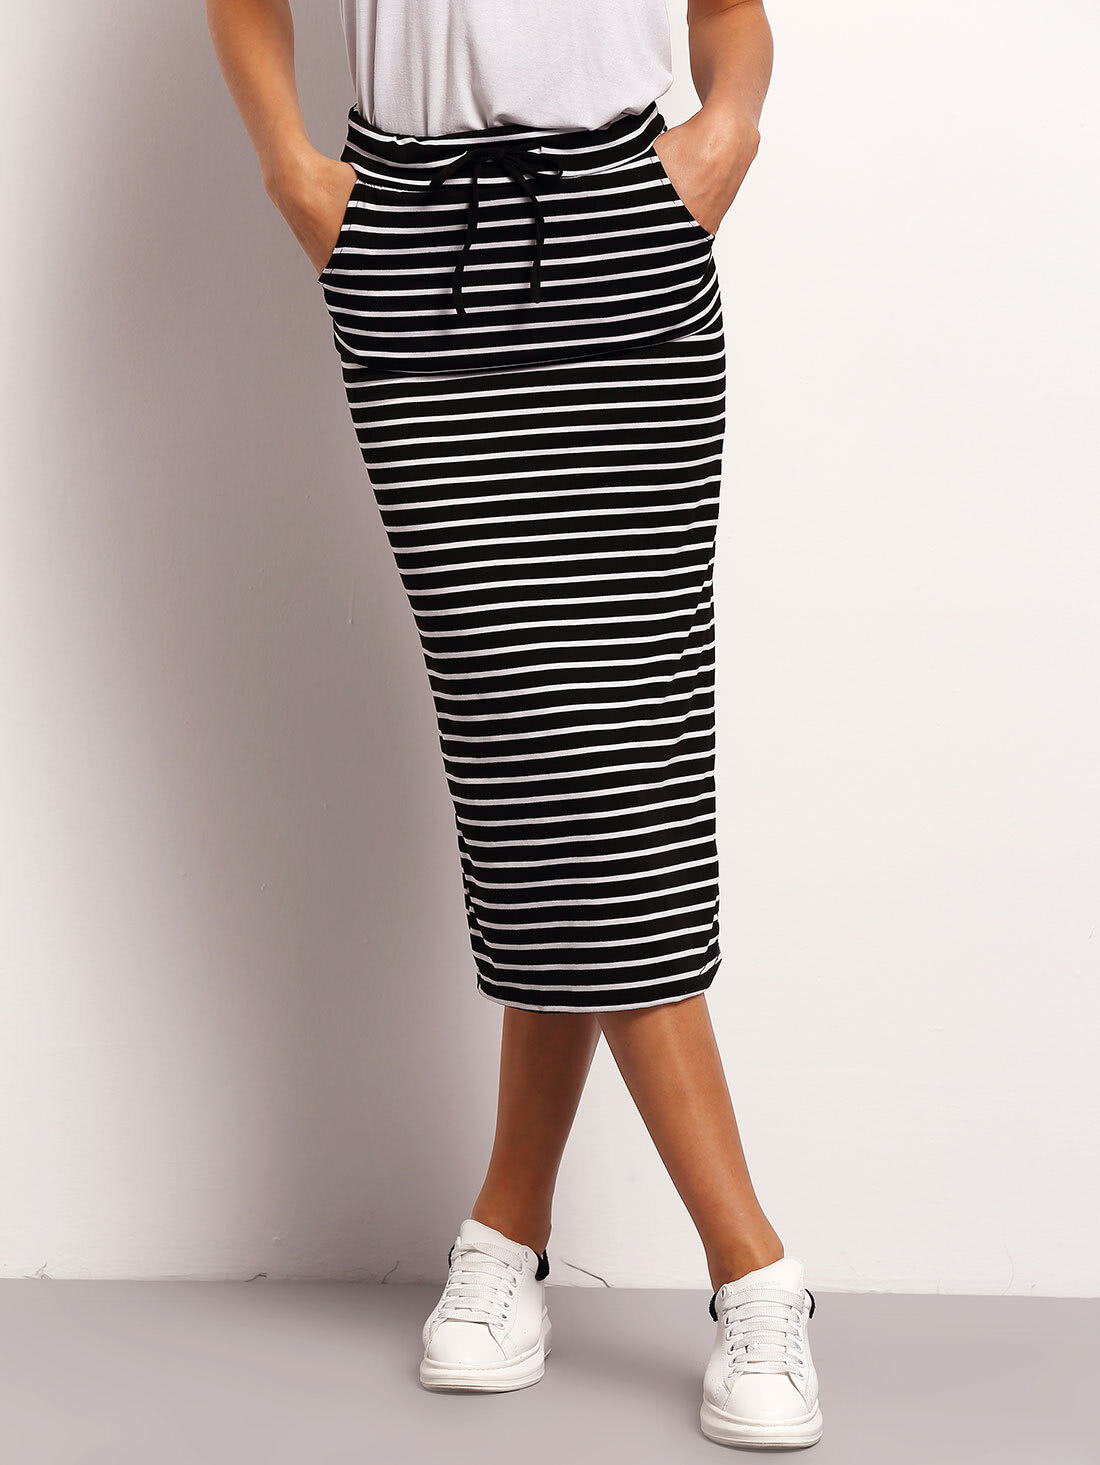 Black White Drawstring Waist Striped Skirt -SheIn(Sheinside)